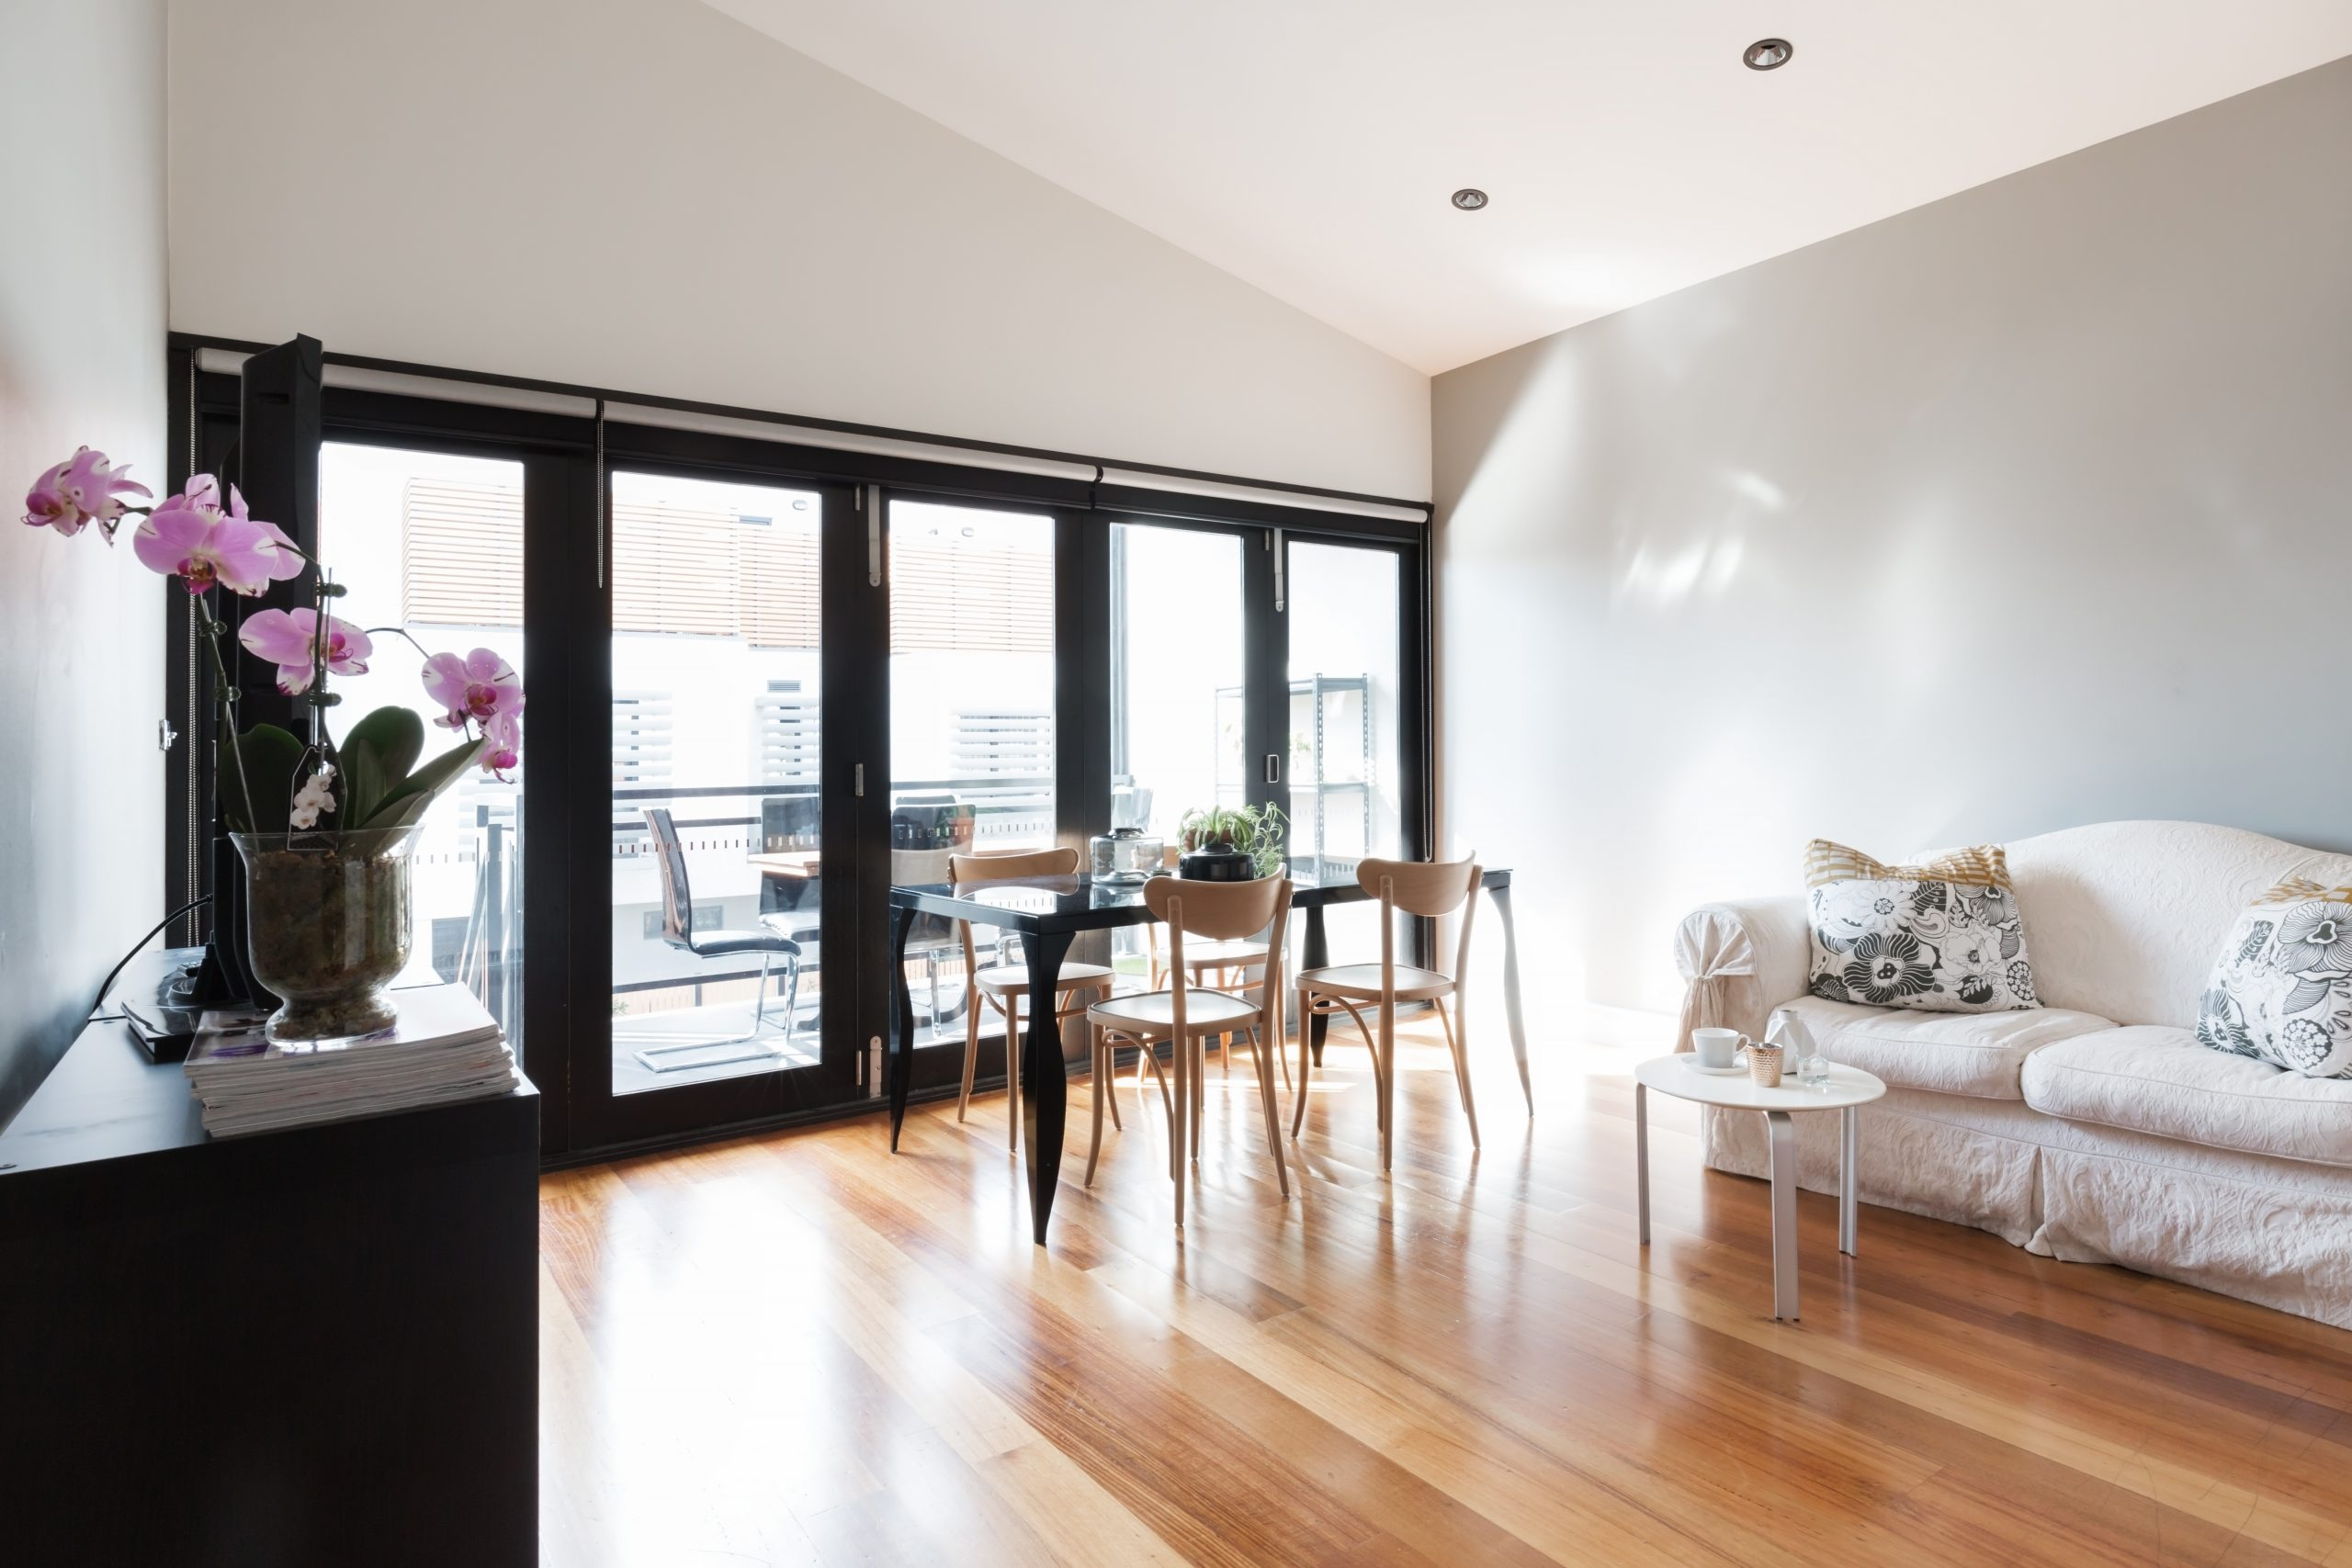 5 Places In Your Home To Place Bifolding Doors